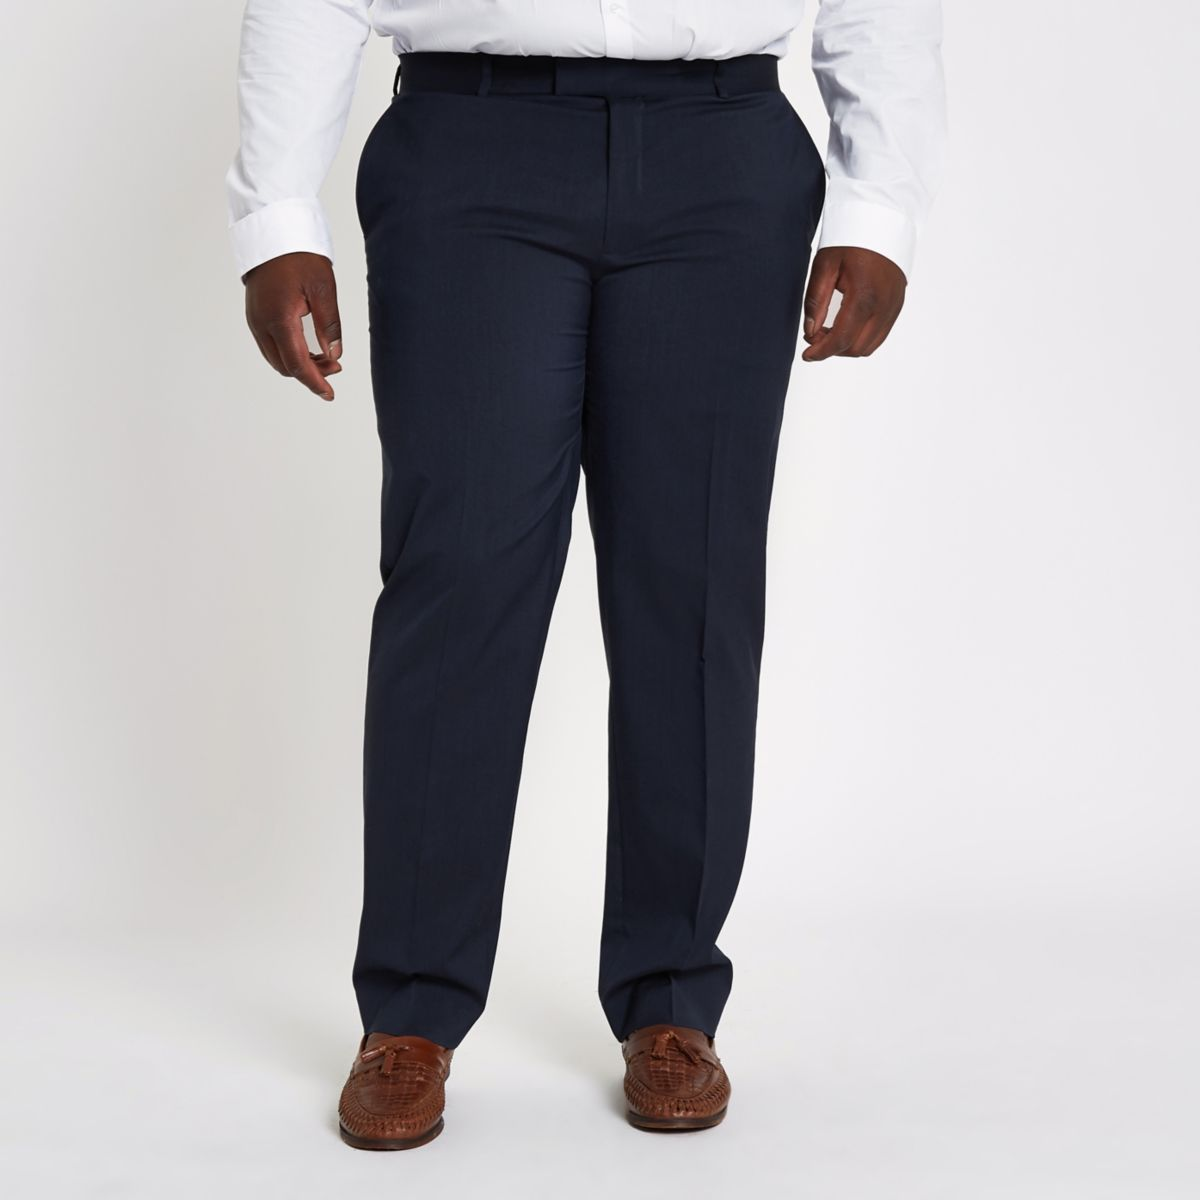 Big and Tall navy suit trousers